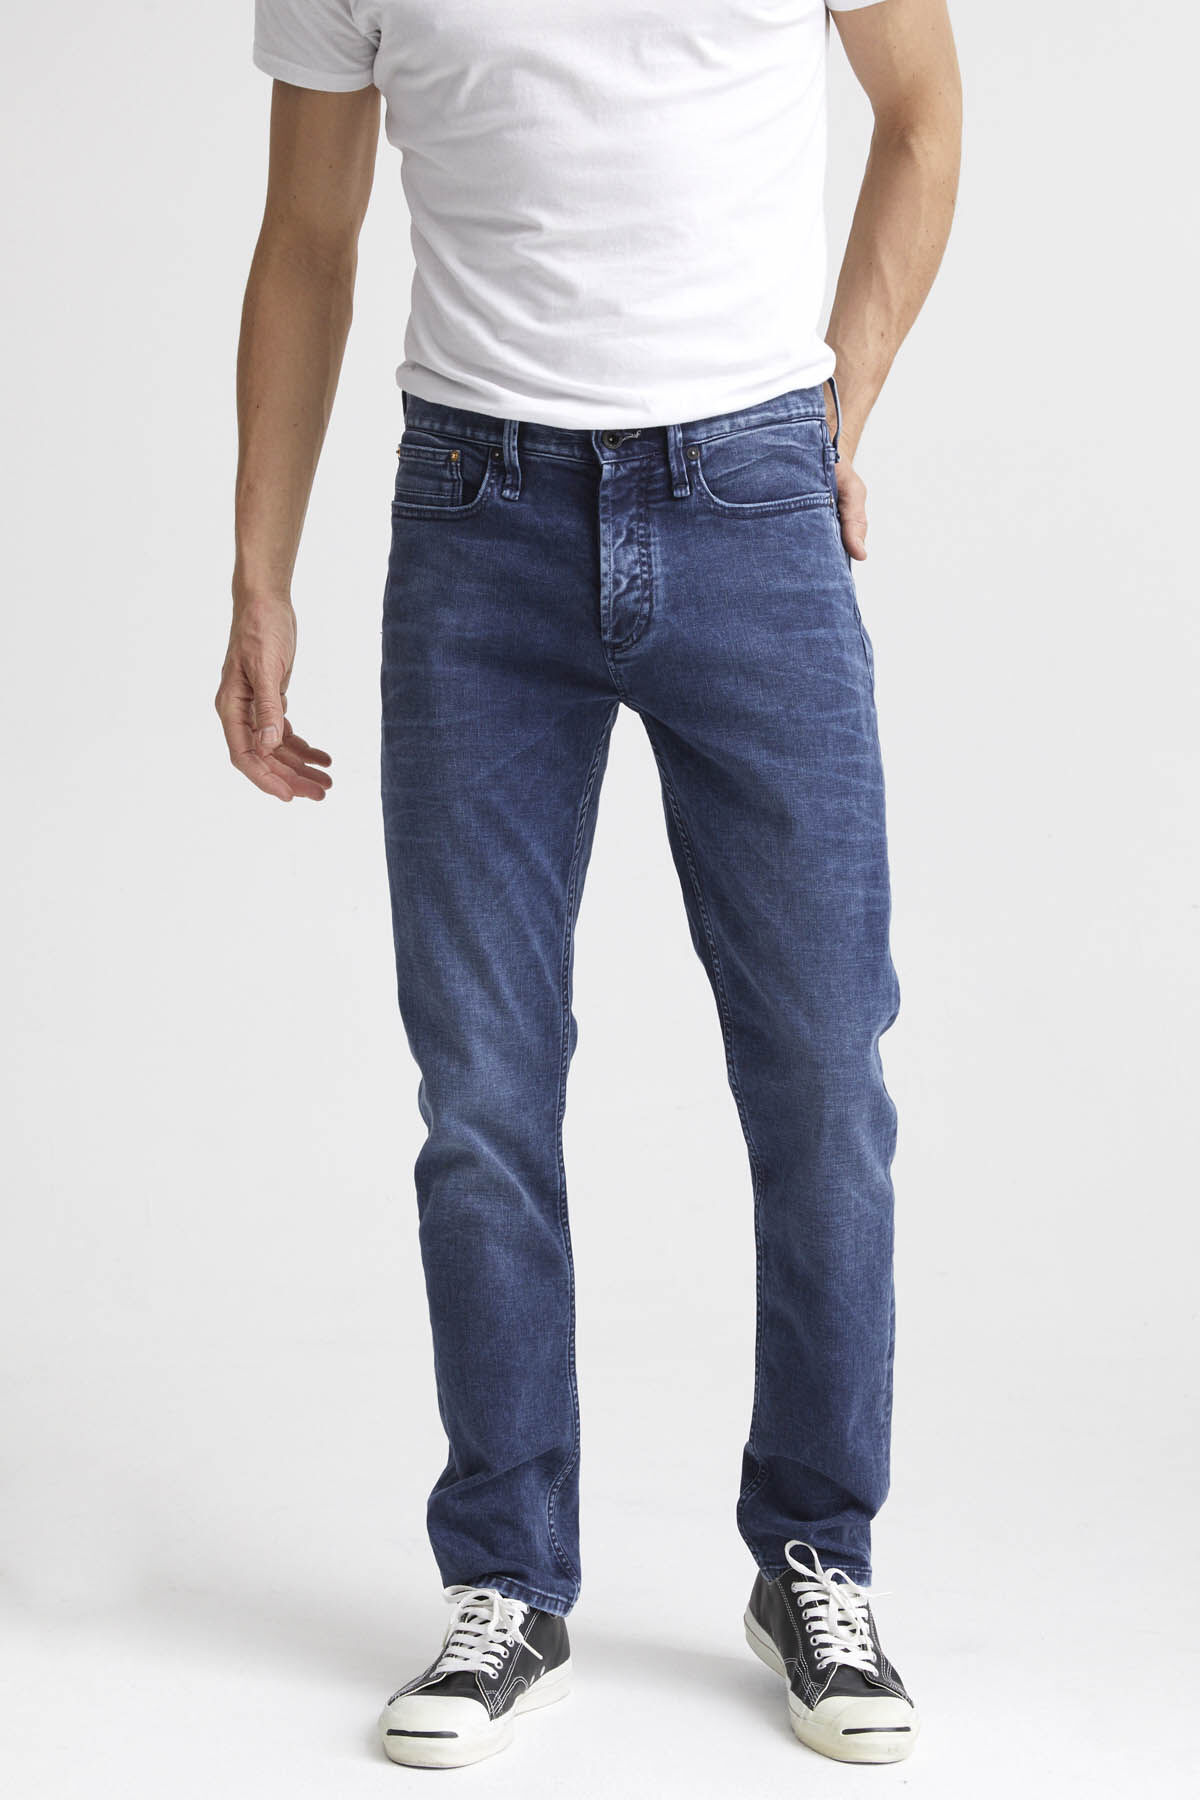 RAZOR Left-Hand, Deep Indigo Denim - Slim Fit